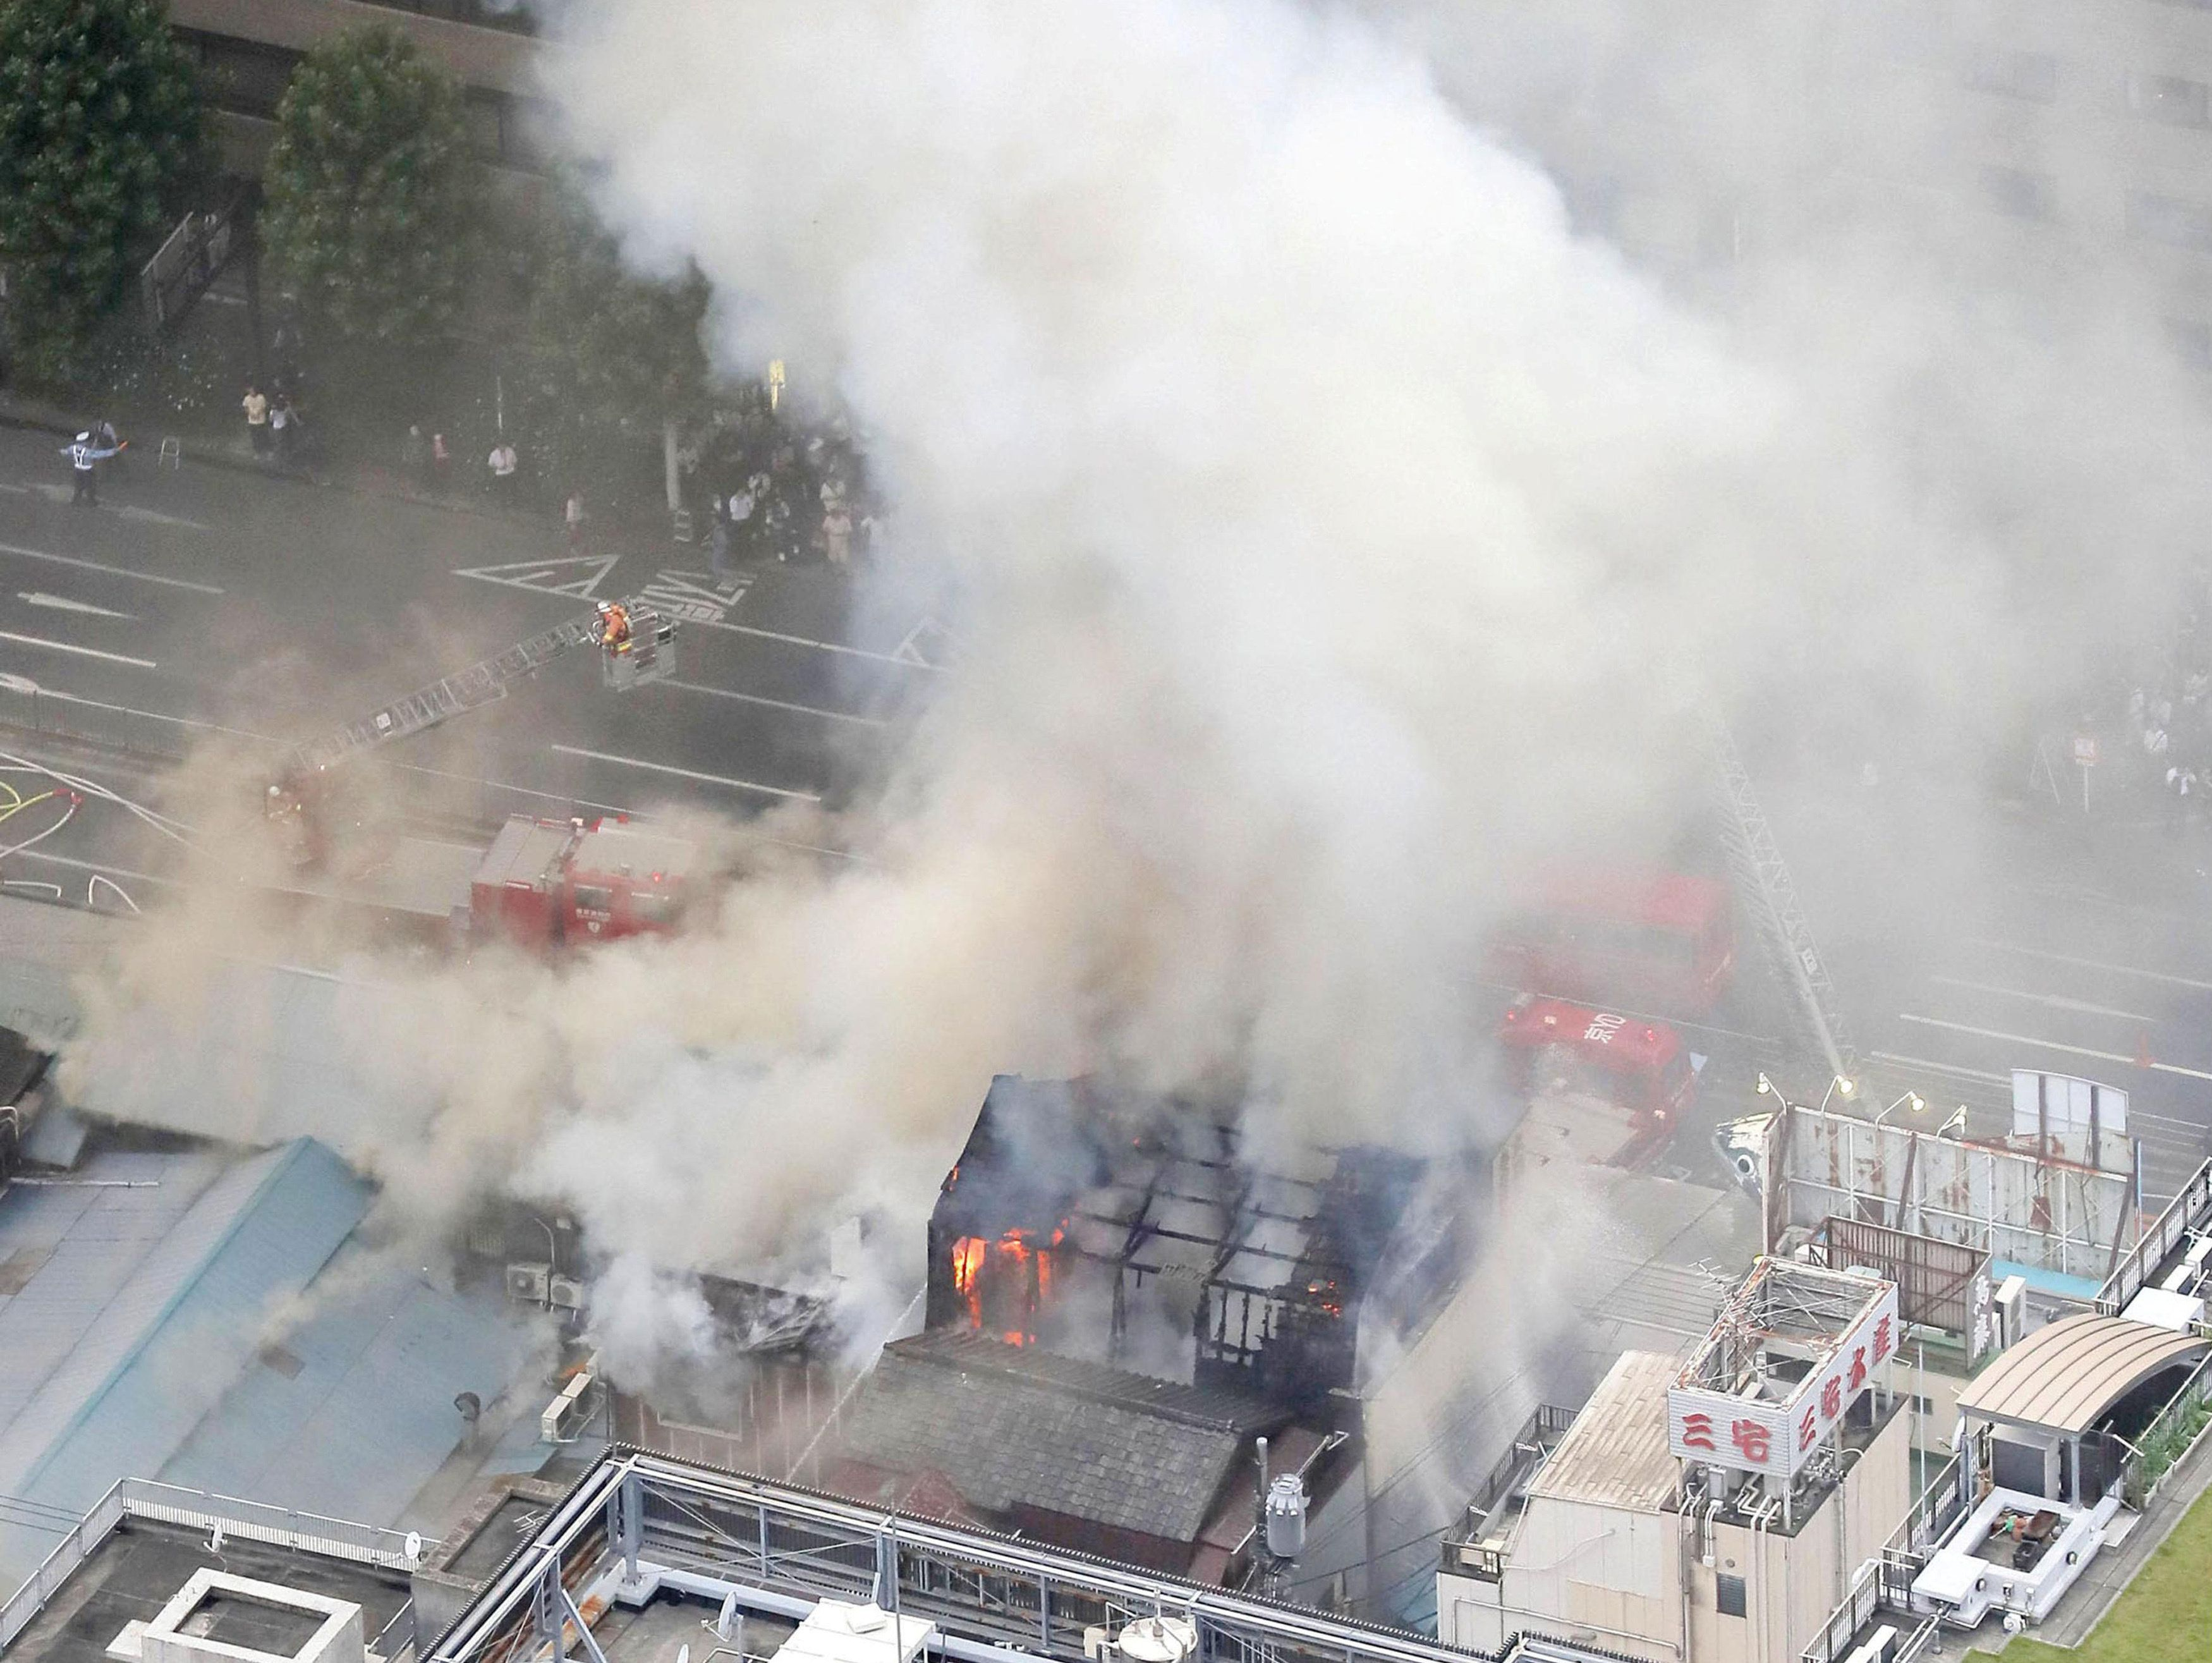 An aerial view shows smoke spews from the fire site at Tsukiji fish market in Tokyo, Japan, in this photo taken by Kyodo August 3, 2017. Mandatory credit Kyodo/via REUTERS ATTENTION EDITORS - THIS IMAGE WAS PROVIDED BY A THIRD PARTY. MANDATORY CREDIT. JAPAN OUT. THIS PICTURE WAS PROCESSED BY REUTERS TO ENHANCE QUALITY. AN UNPROCESSED VERSION HAS BEEN PROVIDED SEPARATELY.